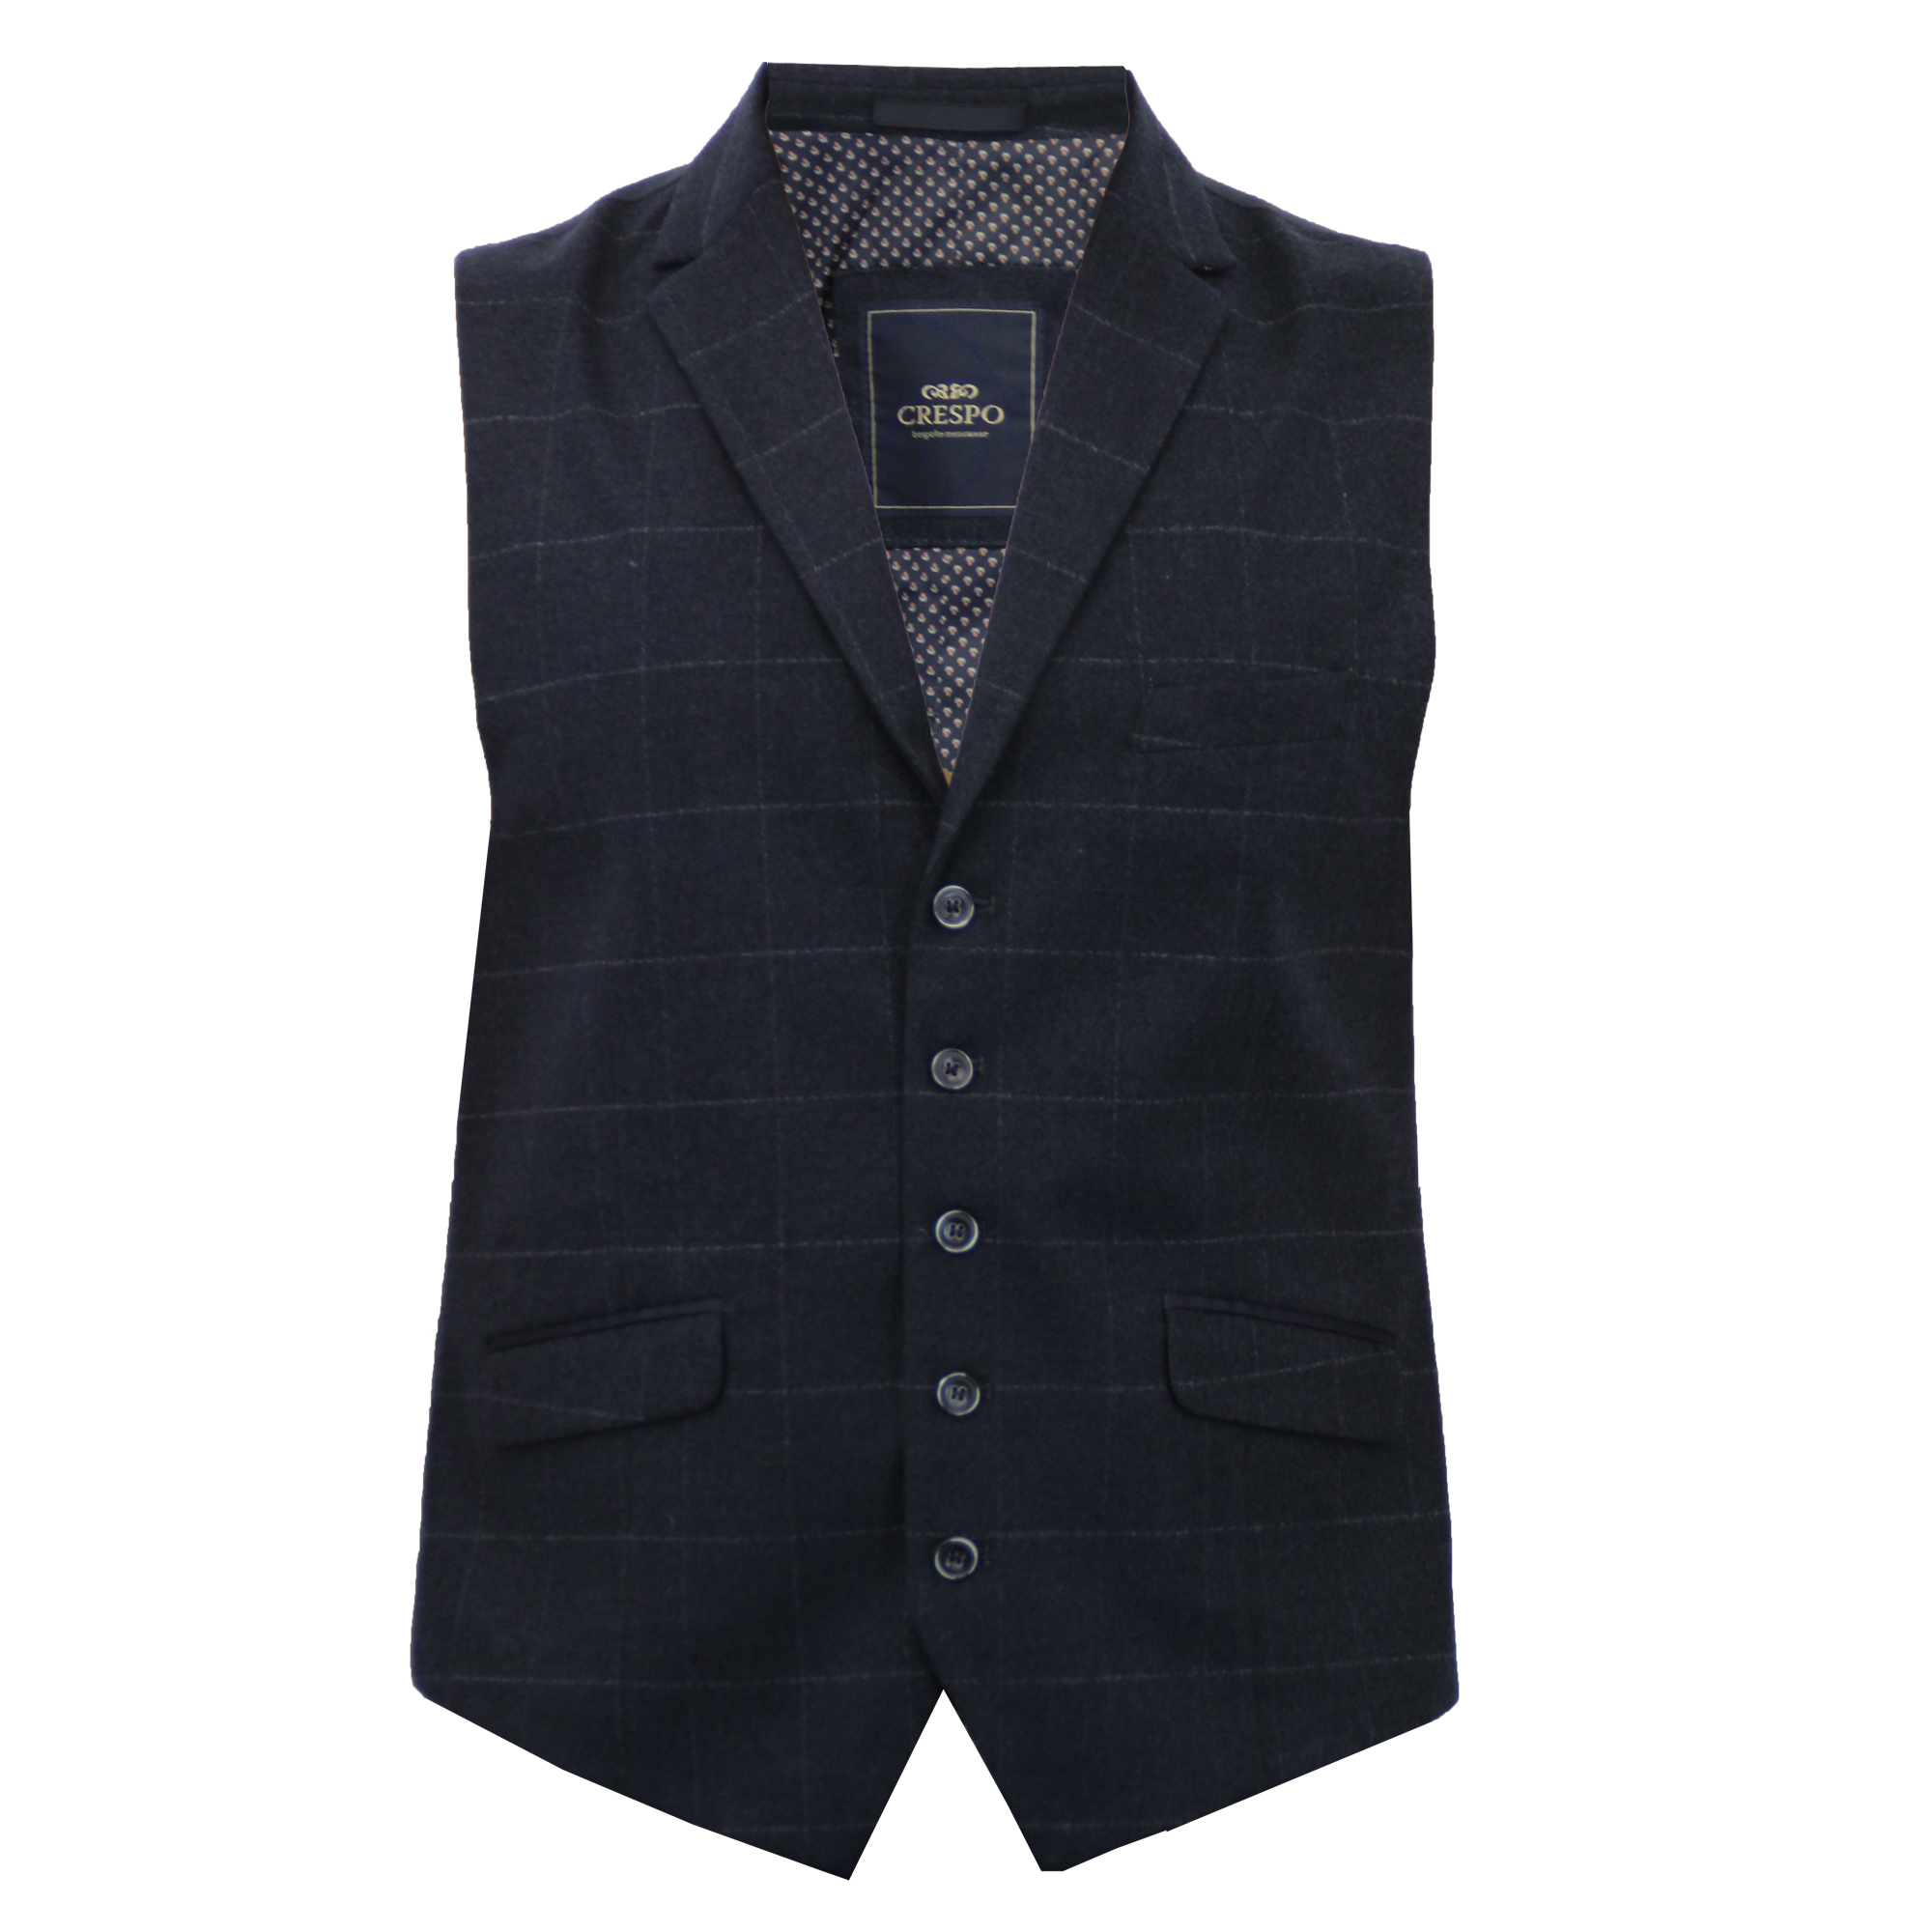 Shop for mens tweed vest wedding online at Target. Free shipping on purchases over $35 and save 5% every day with your Target REDcard.